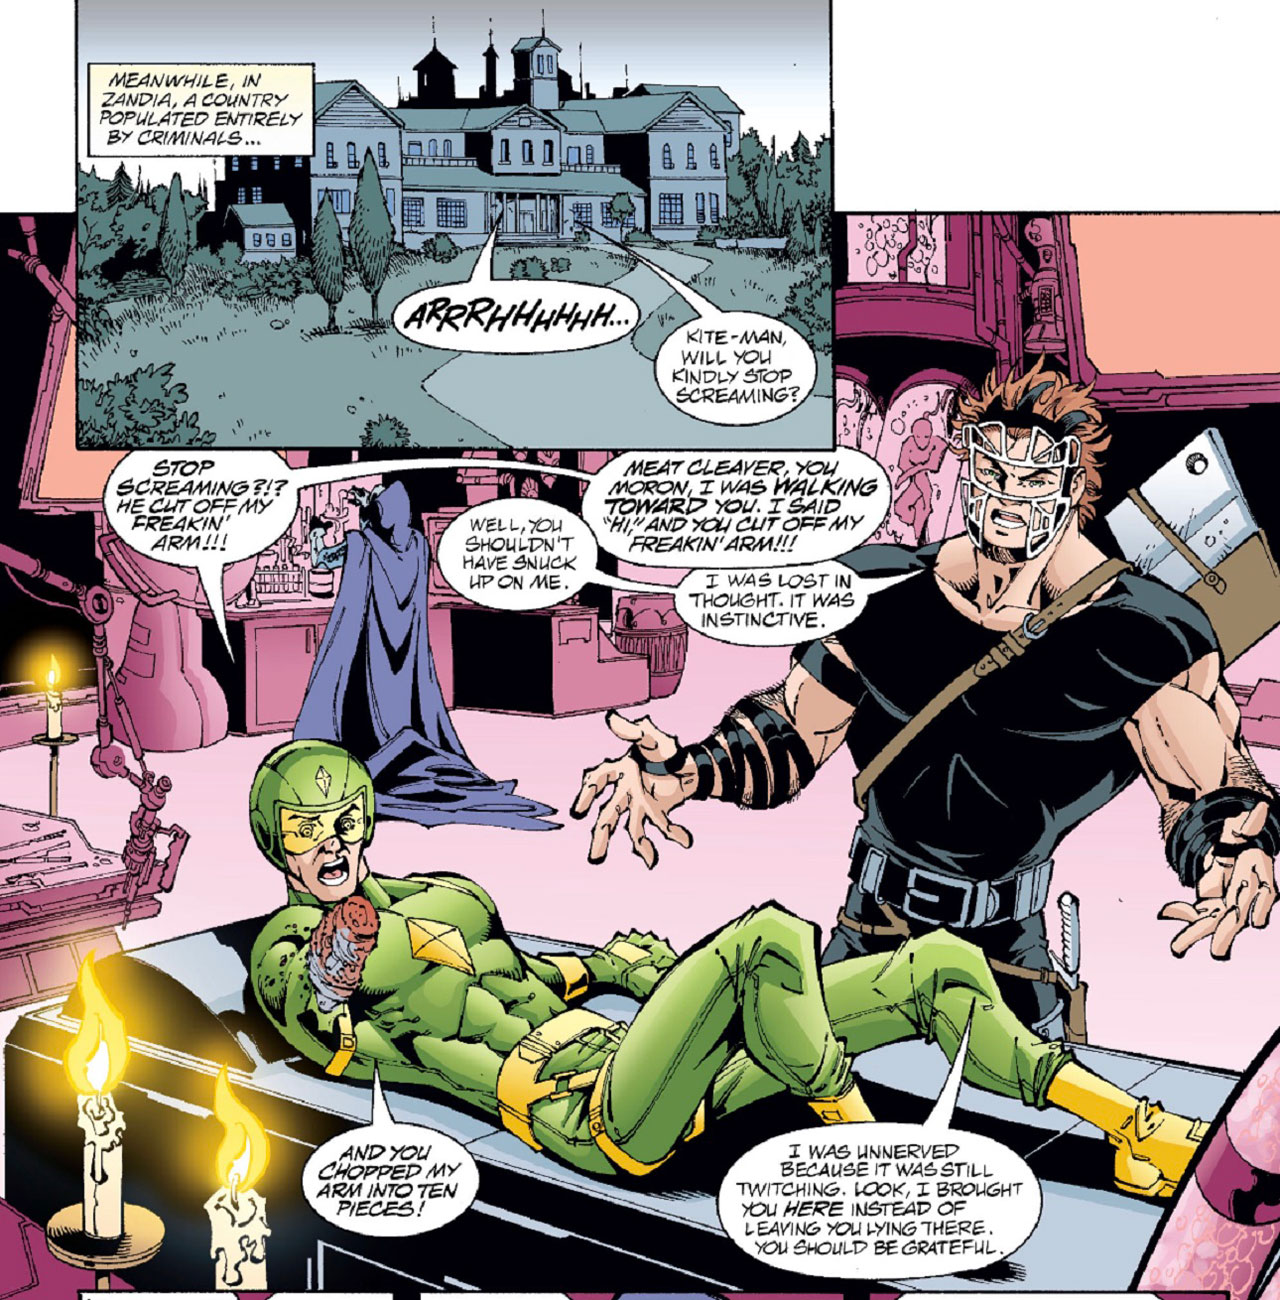 Kite-Man-Meat-Cleaver-Young-Justice.jpg